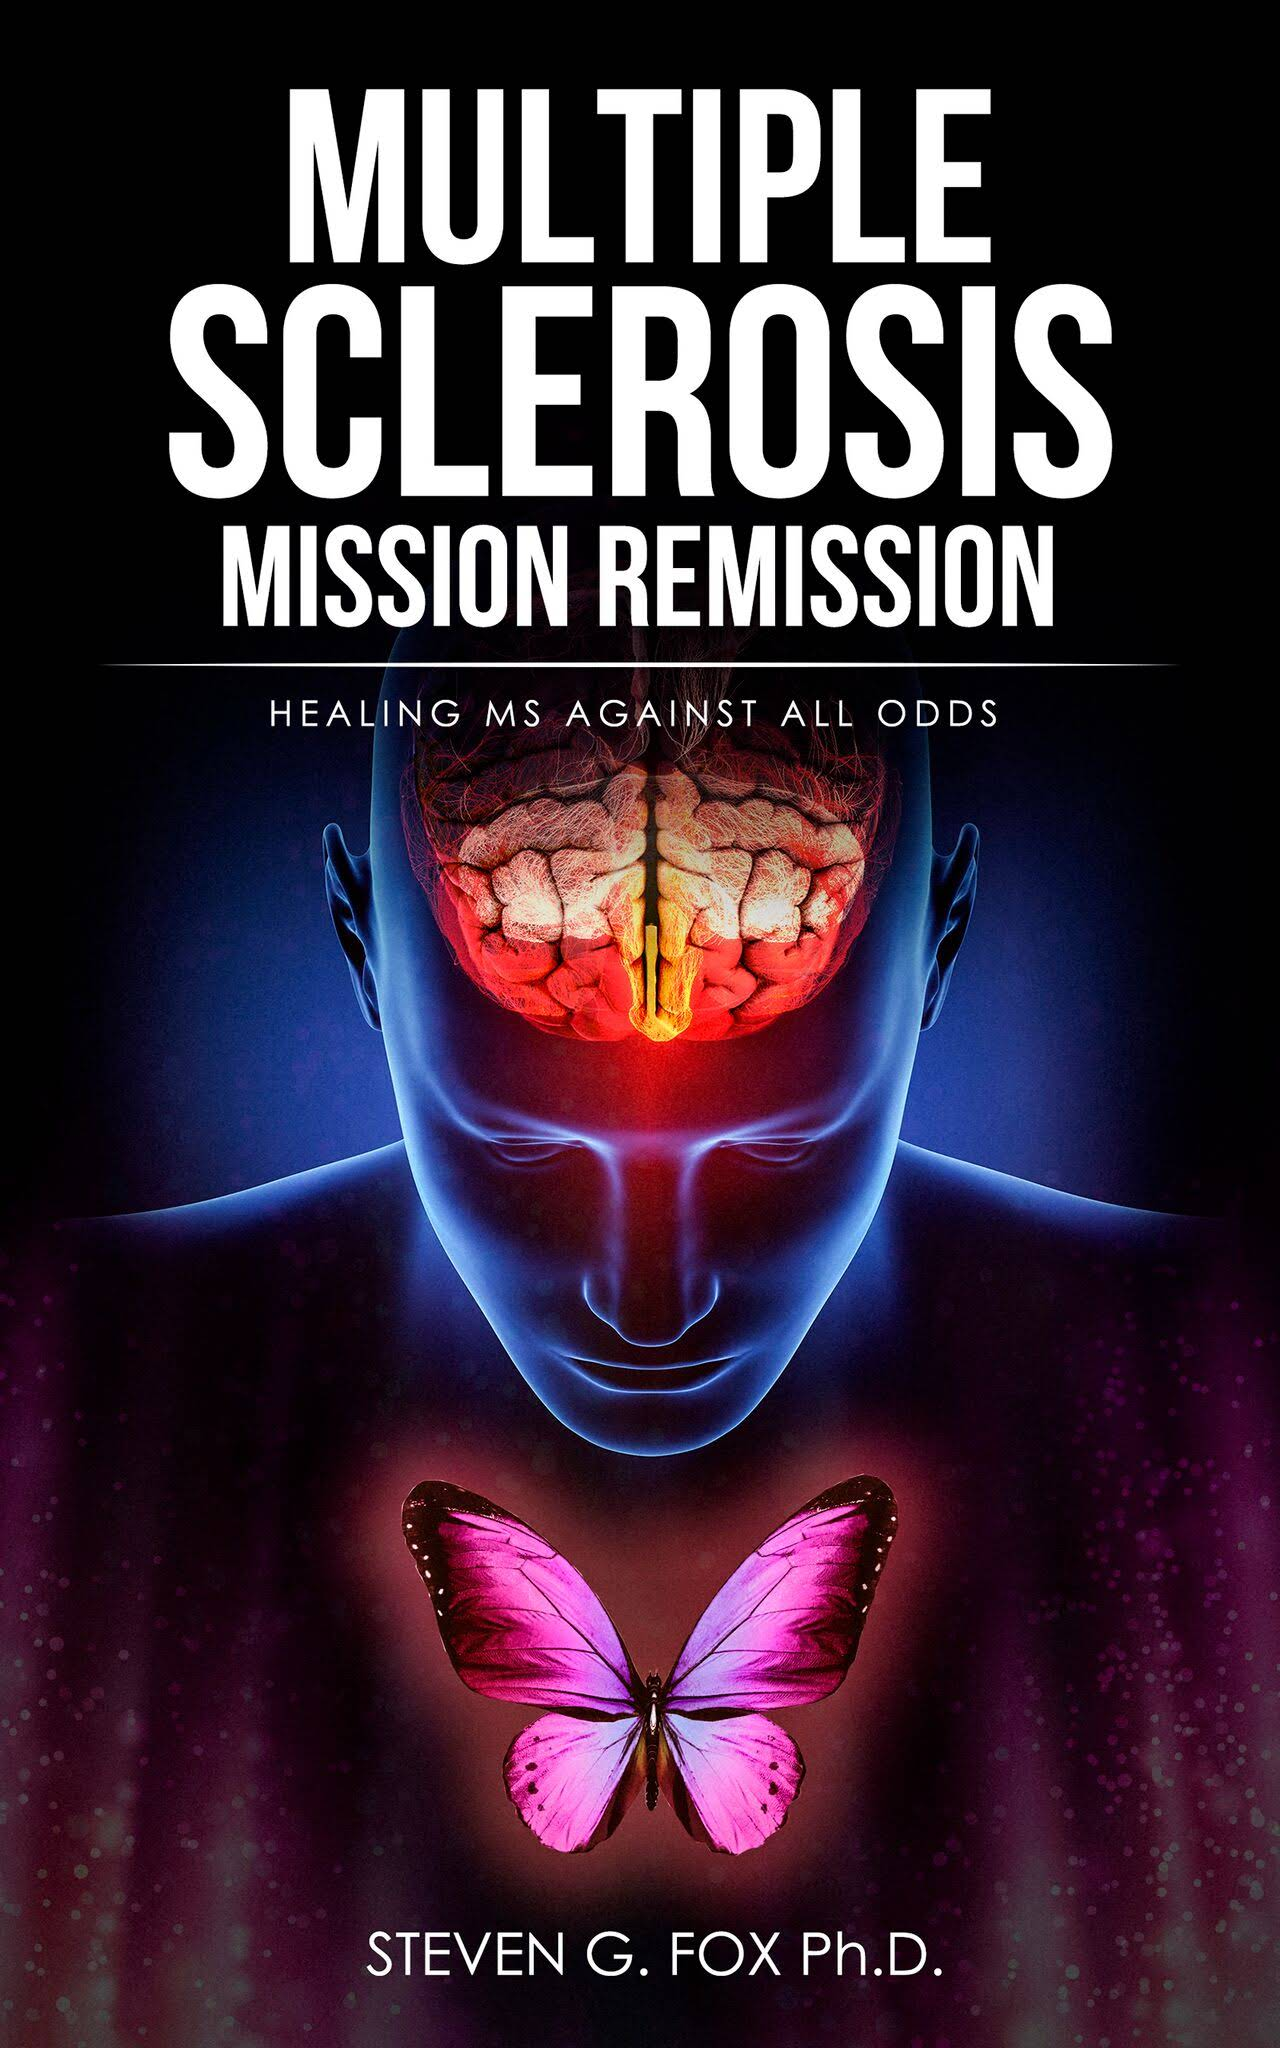 Multiple Sclerosis Mission Remission: Healing MS Against All Odds